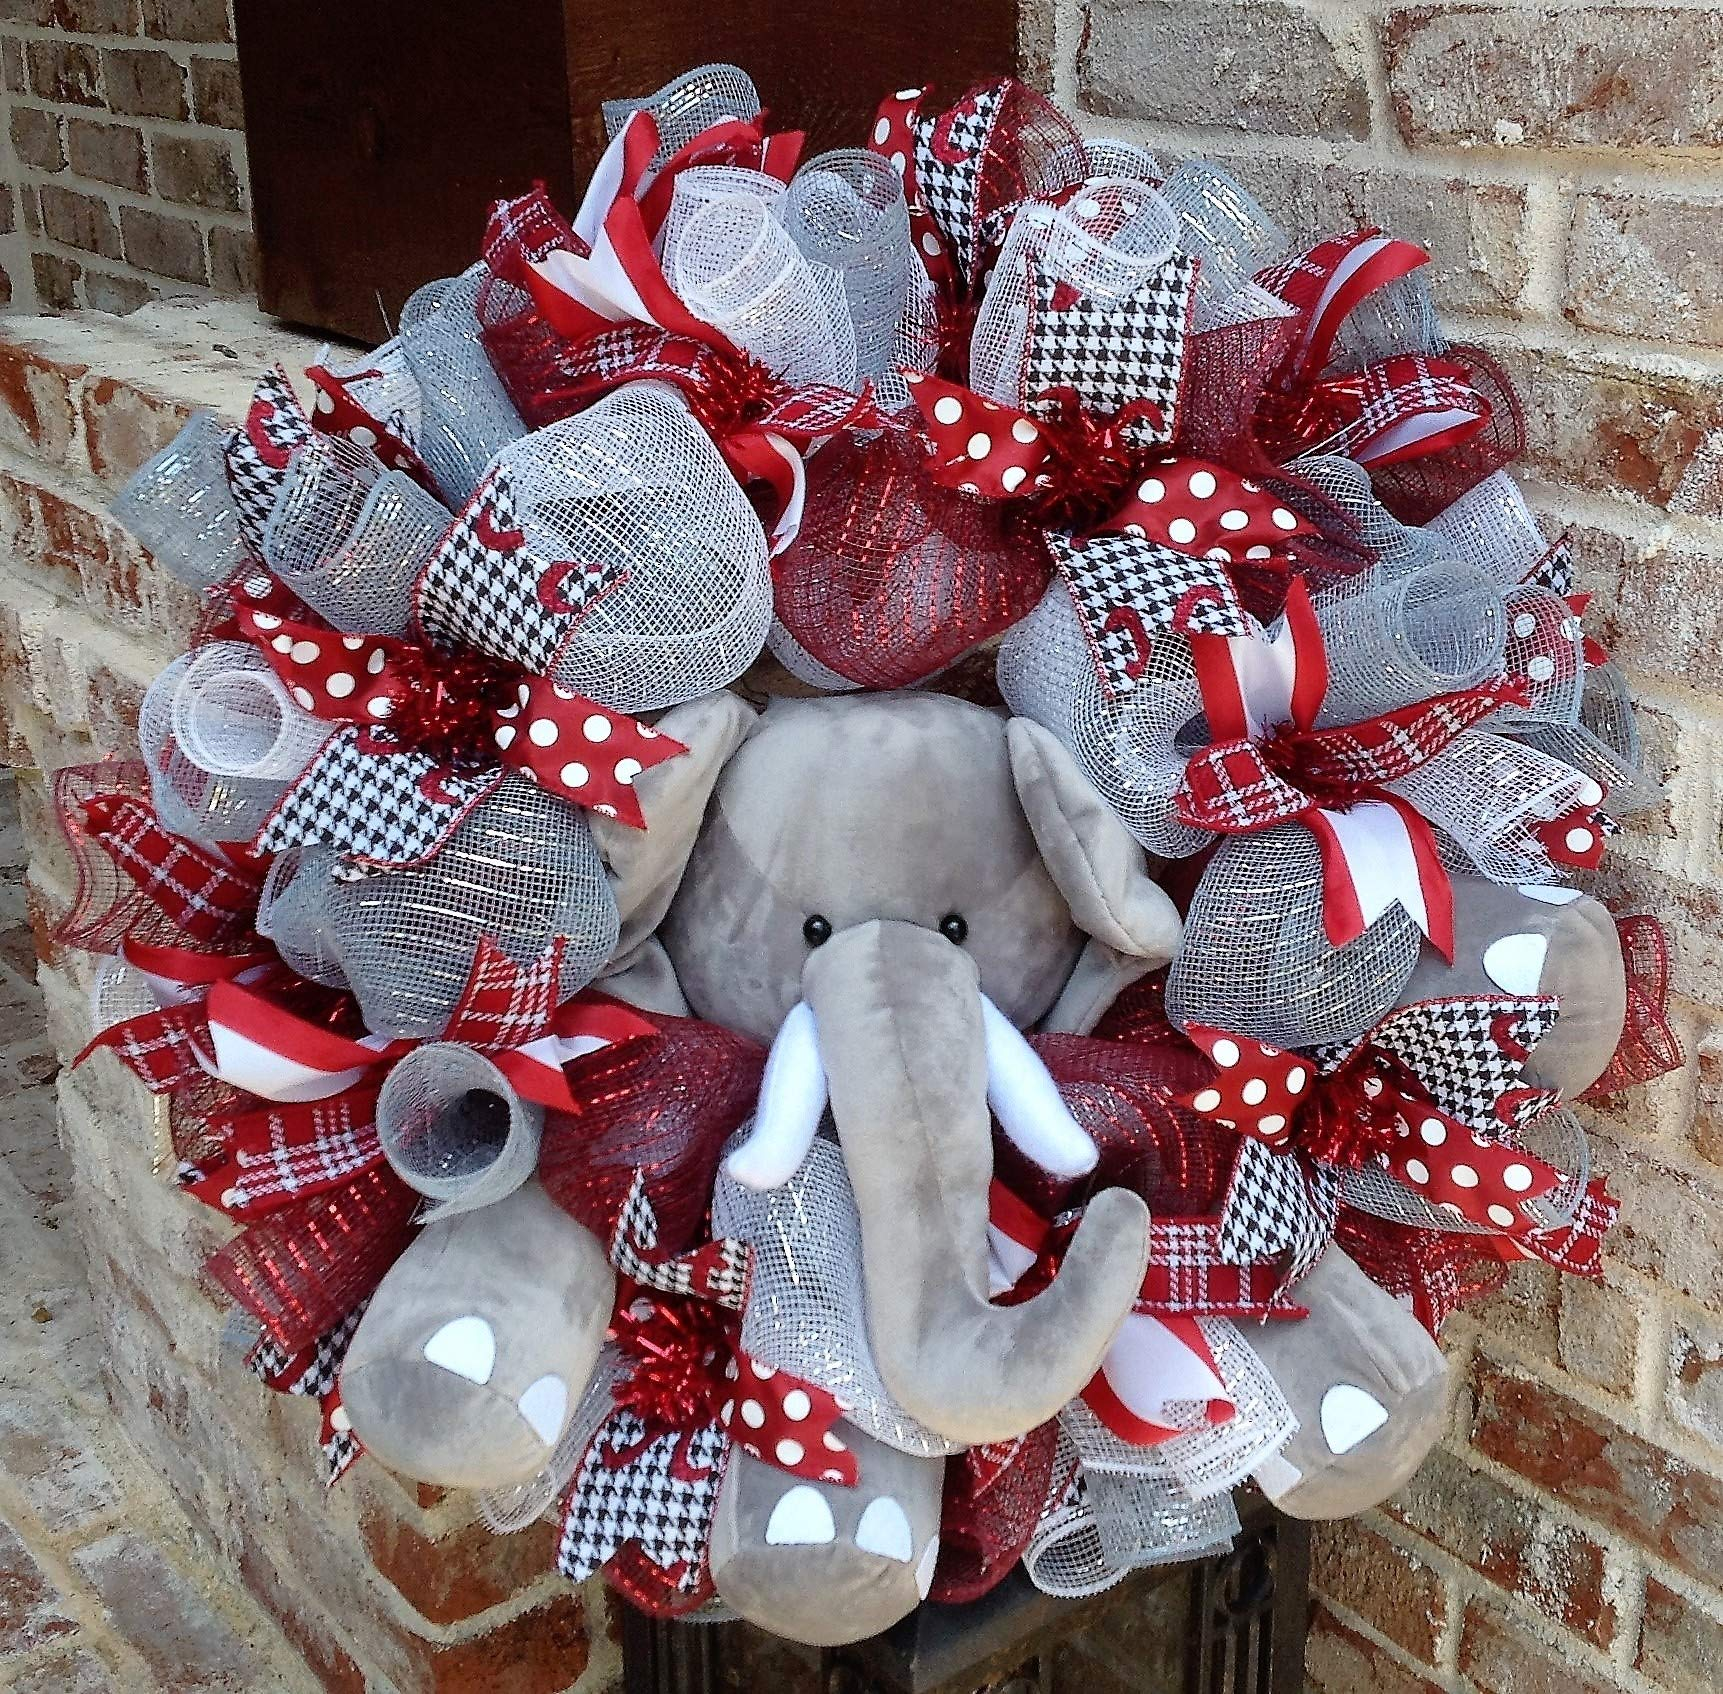 Flora Decor Alabama Crimson Tide Collegiate Wreath w Elephant -26''